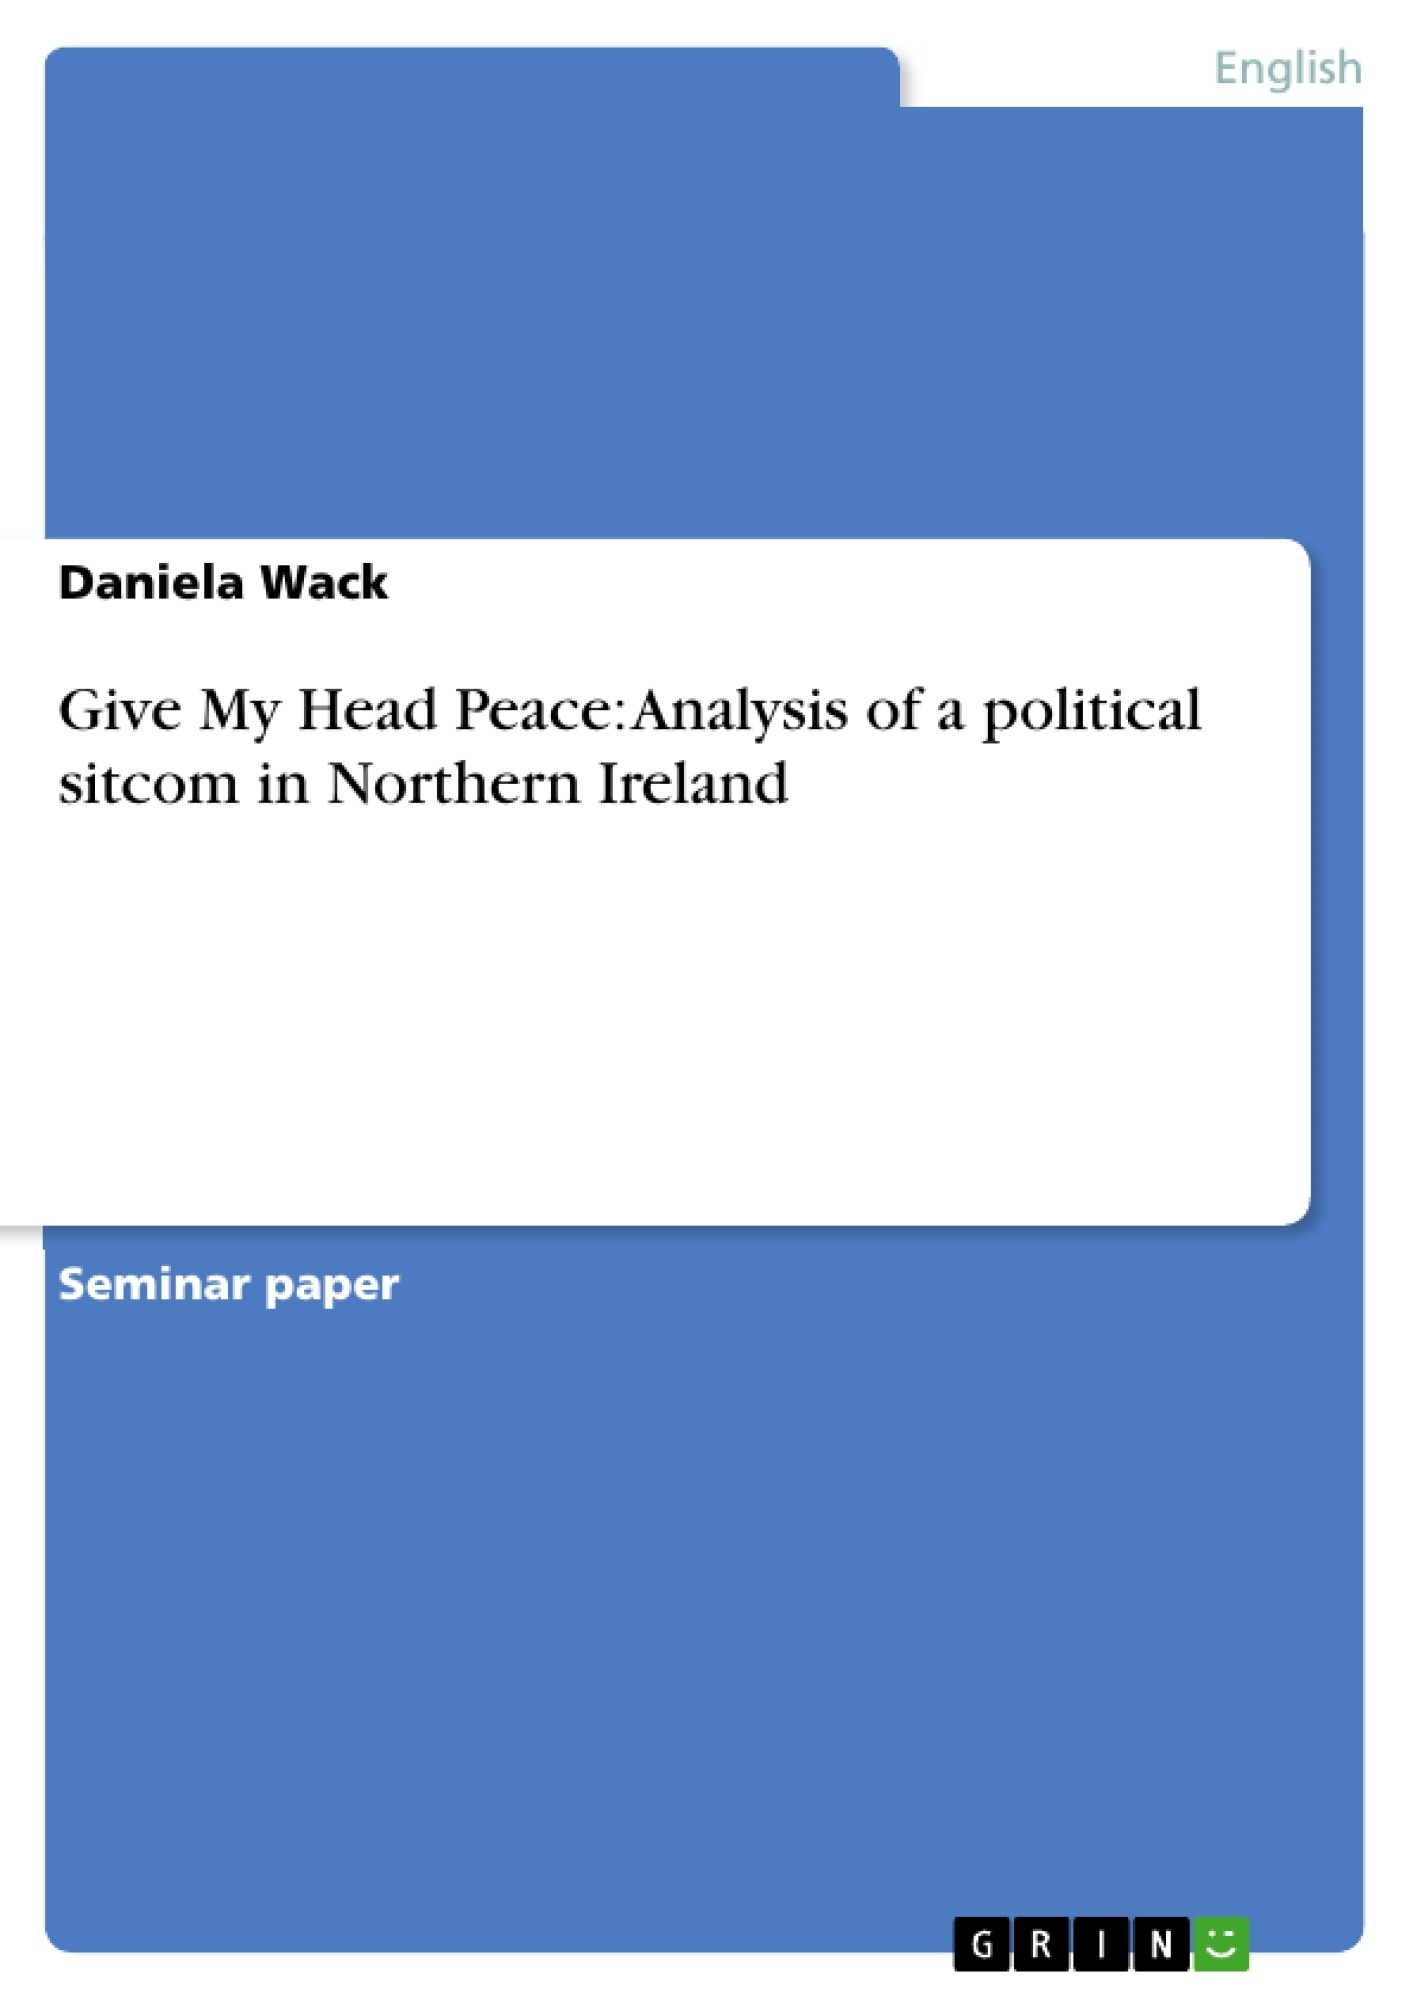 Title: Give My Head Peace: Analysis of a political sitcom in Northern Ireland